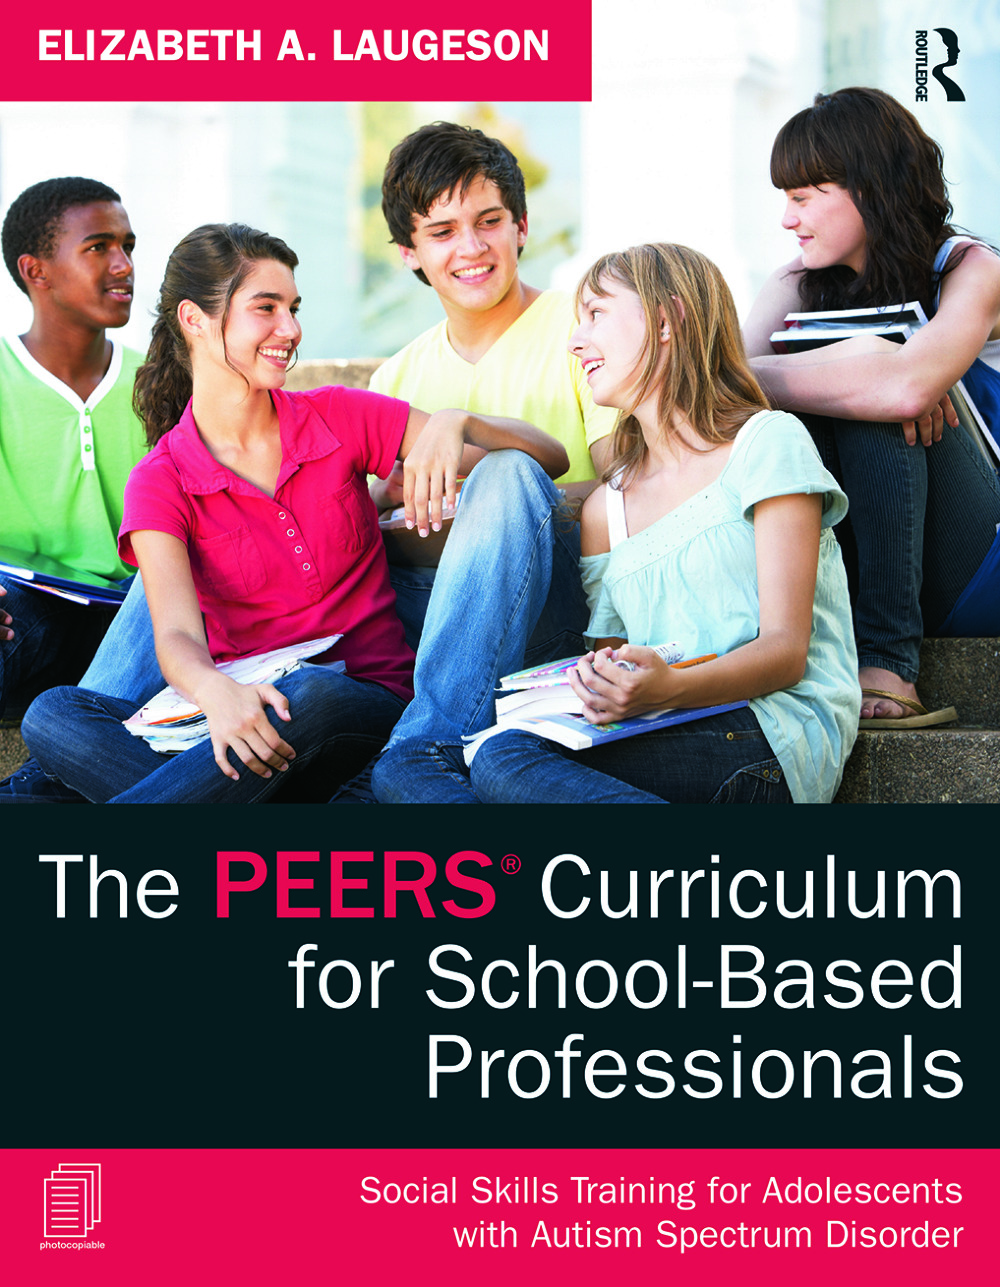 The PEERS Curriculum for School-Based Professionals: Social Skills Training for Adolescents with Autism Spectrum Disorder (Paperback) book cover